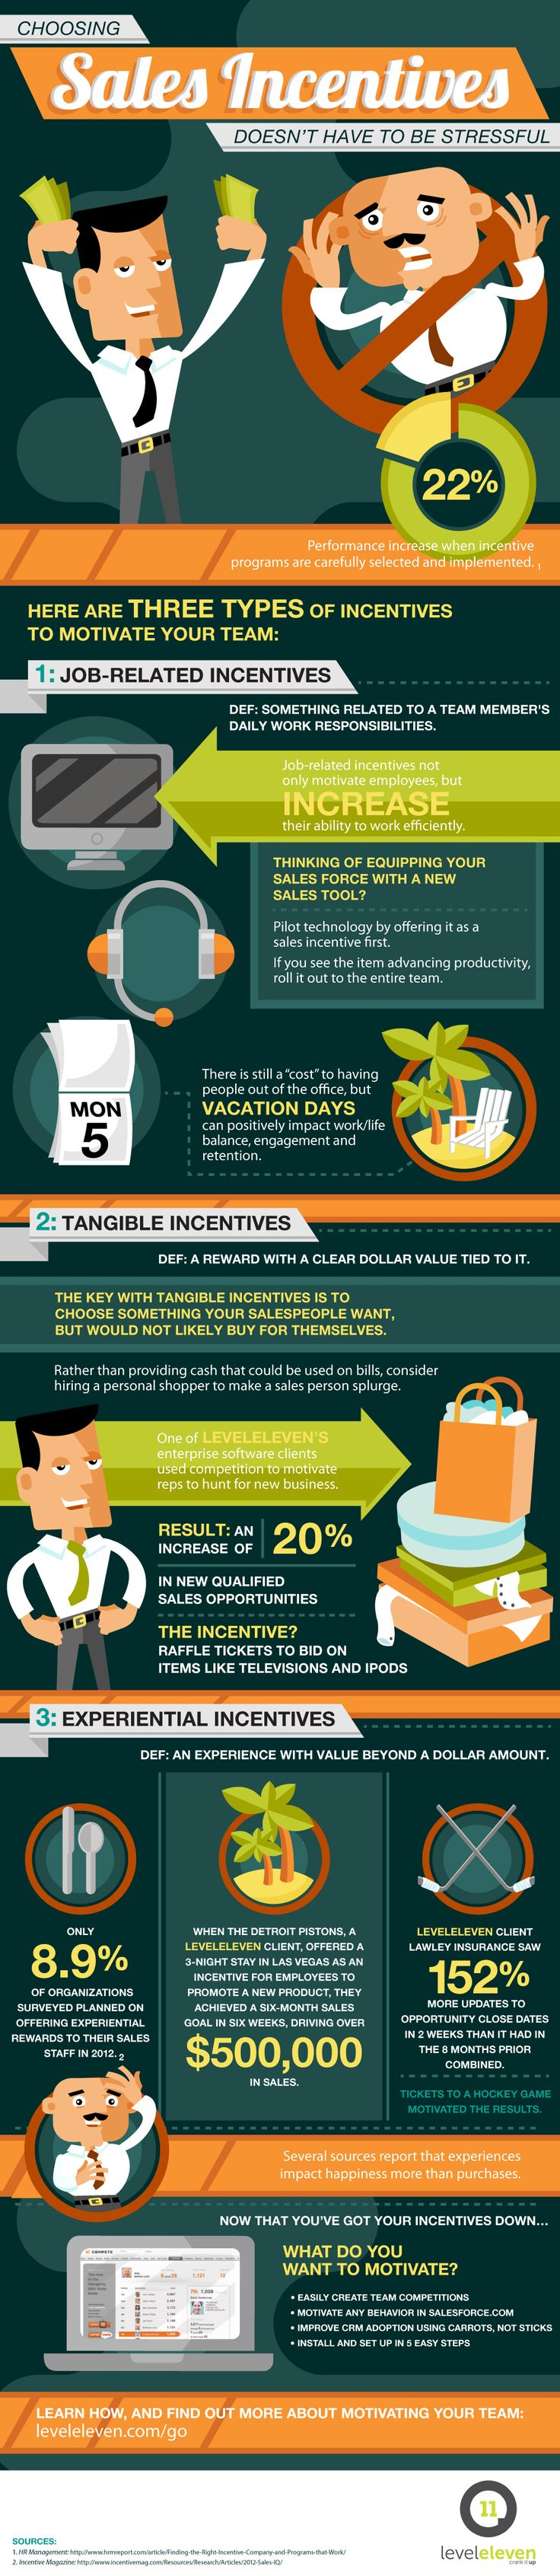 best images about s infographics s motivating your s team doesn t have to be stressful you can start the 3 types of s incentives listed on this infographic